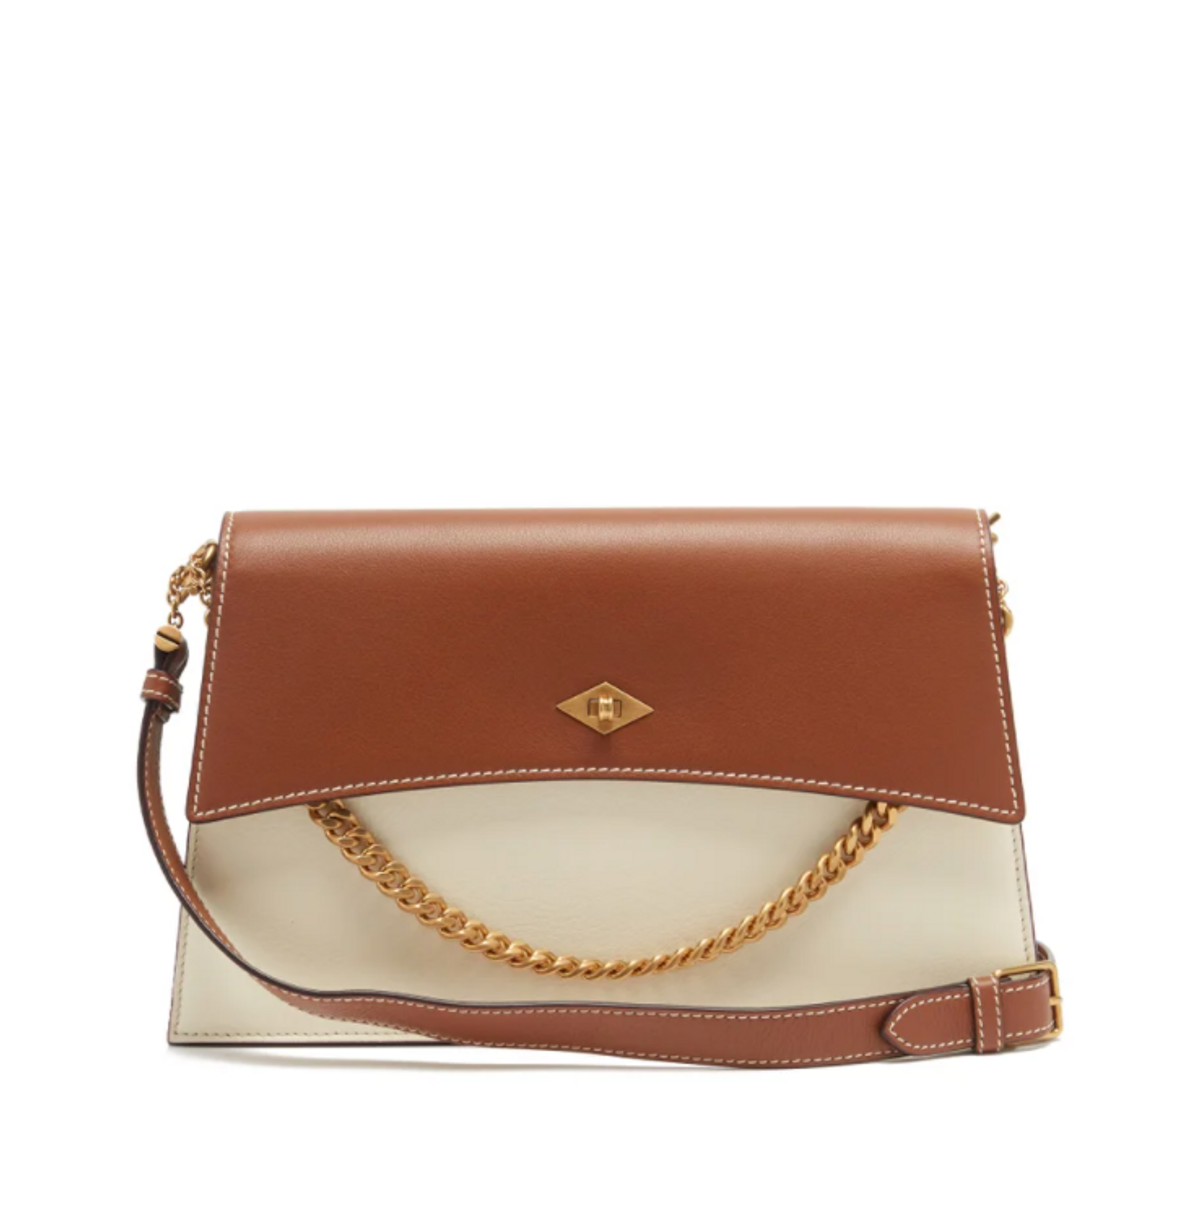 Roma Small Leather Shoulder Bag